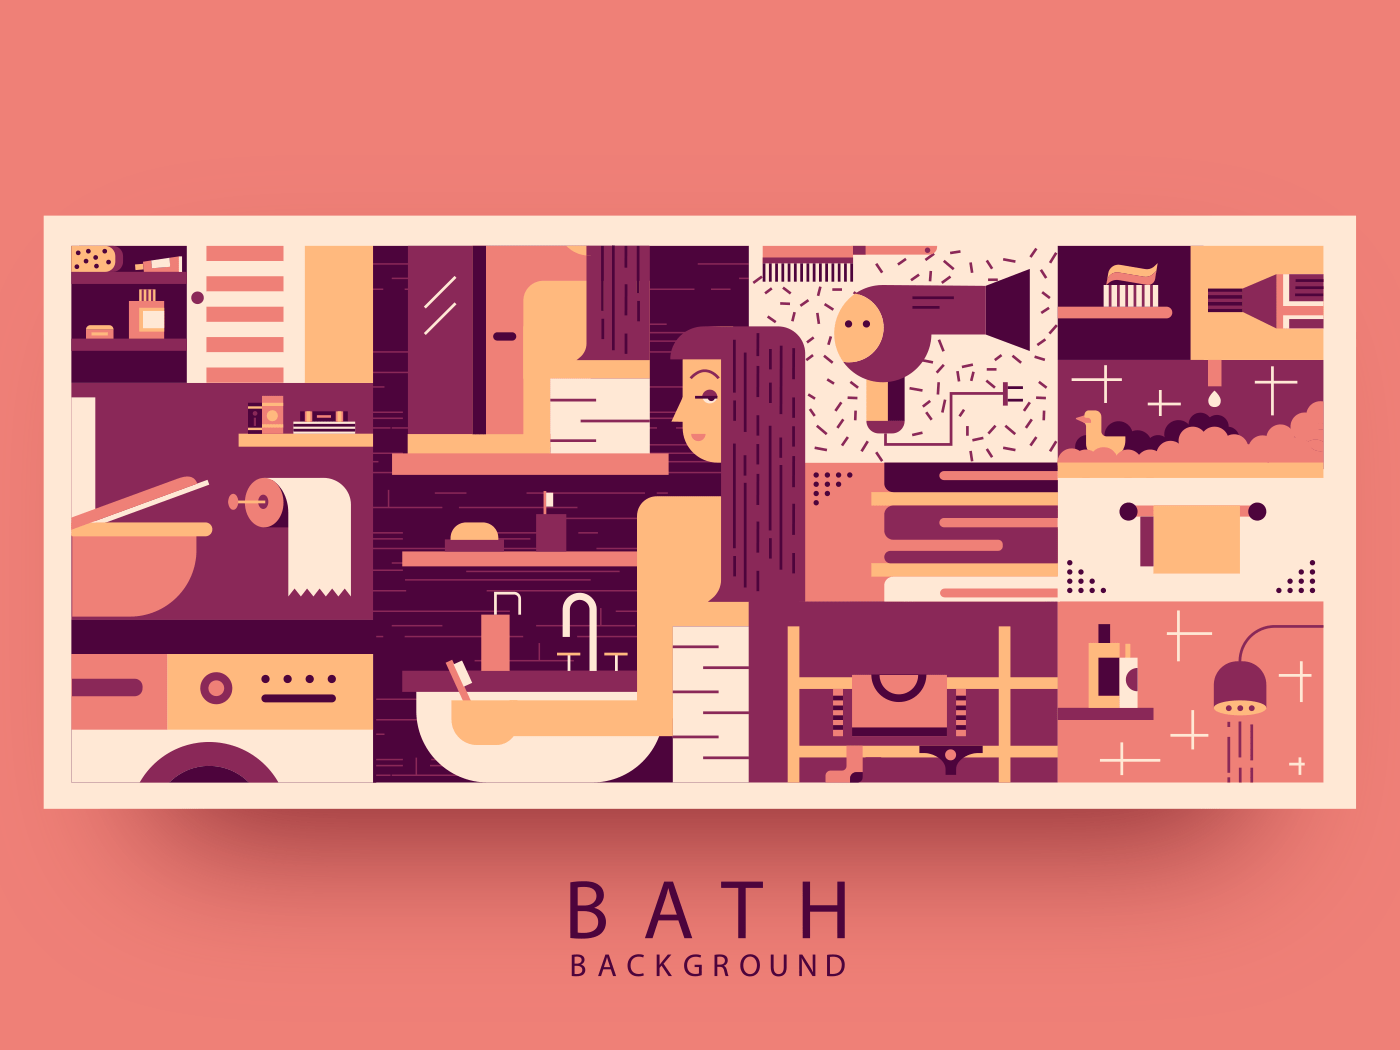 Bathroom woman background flat vector illustration